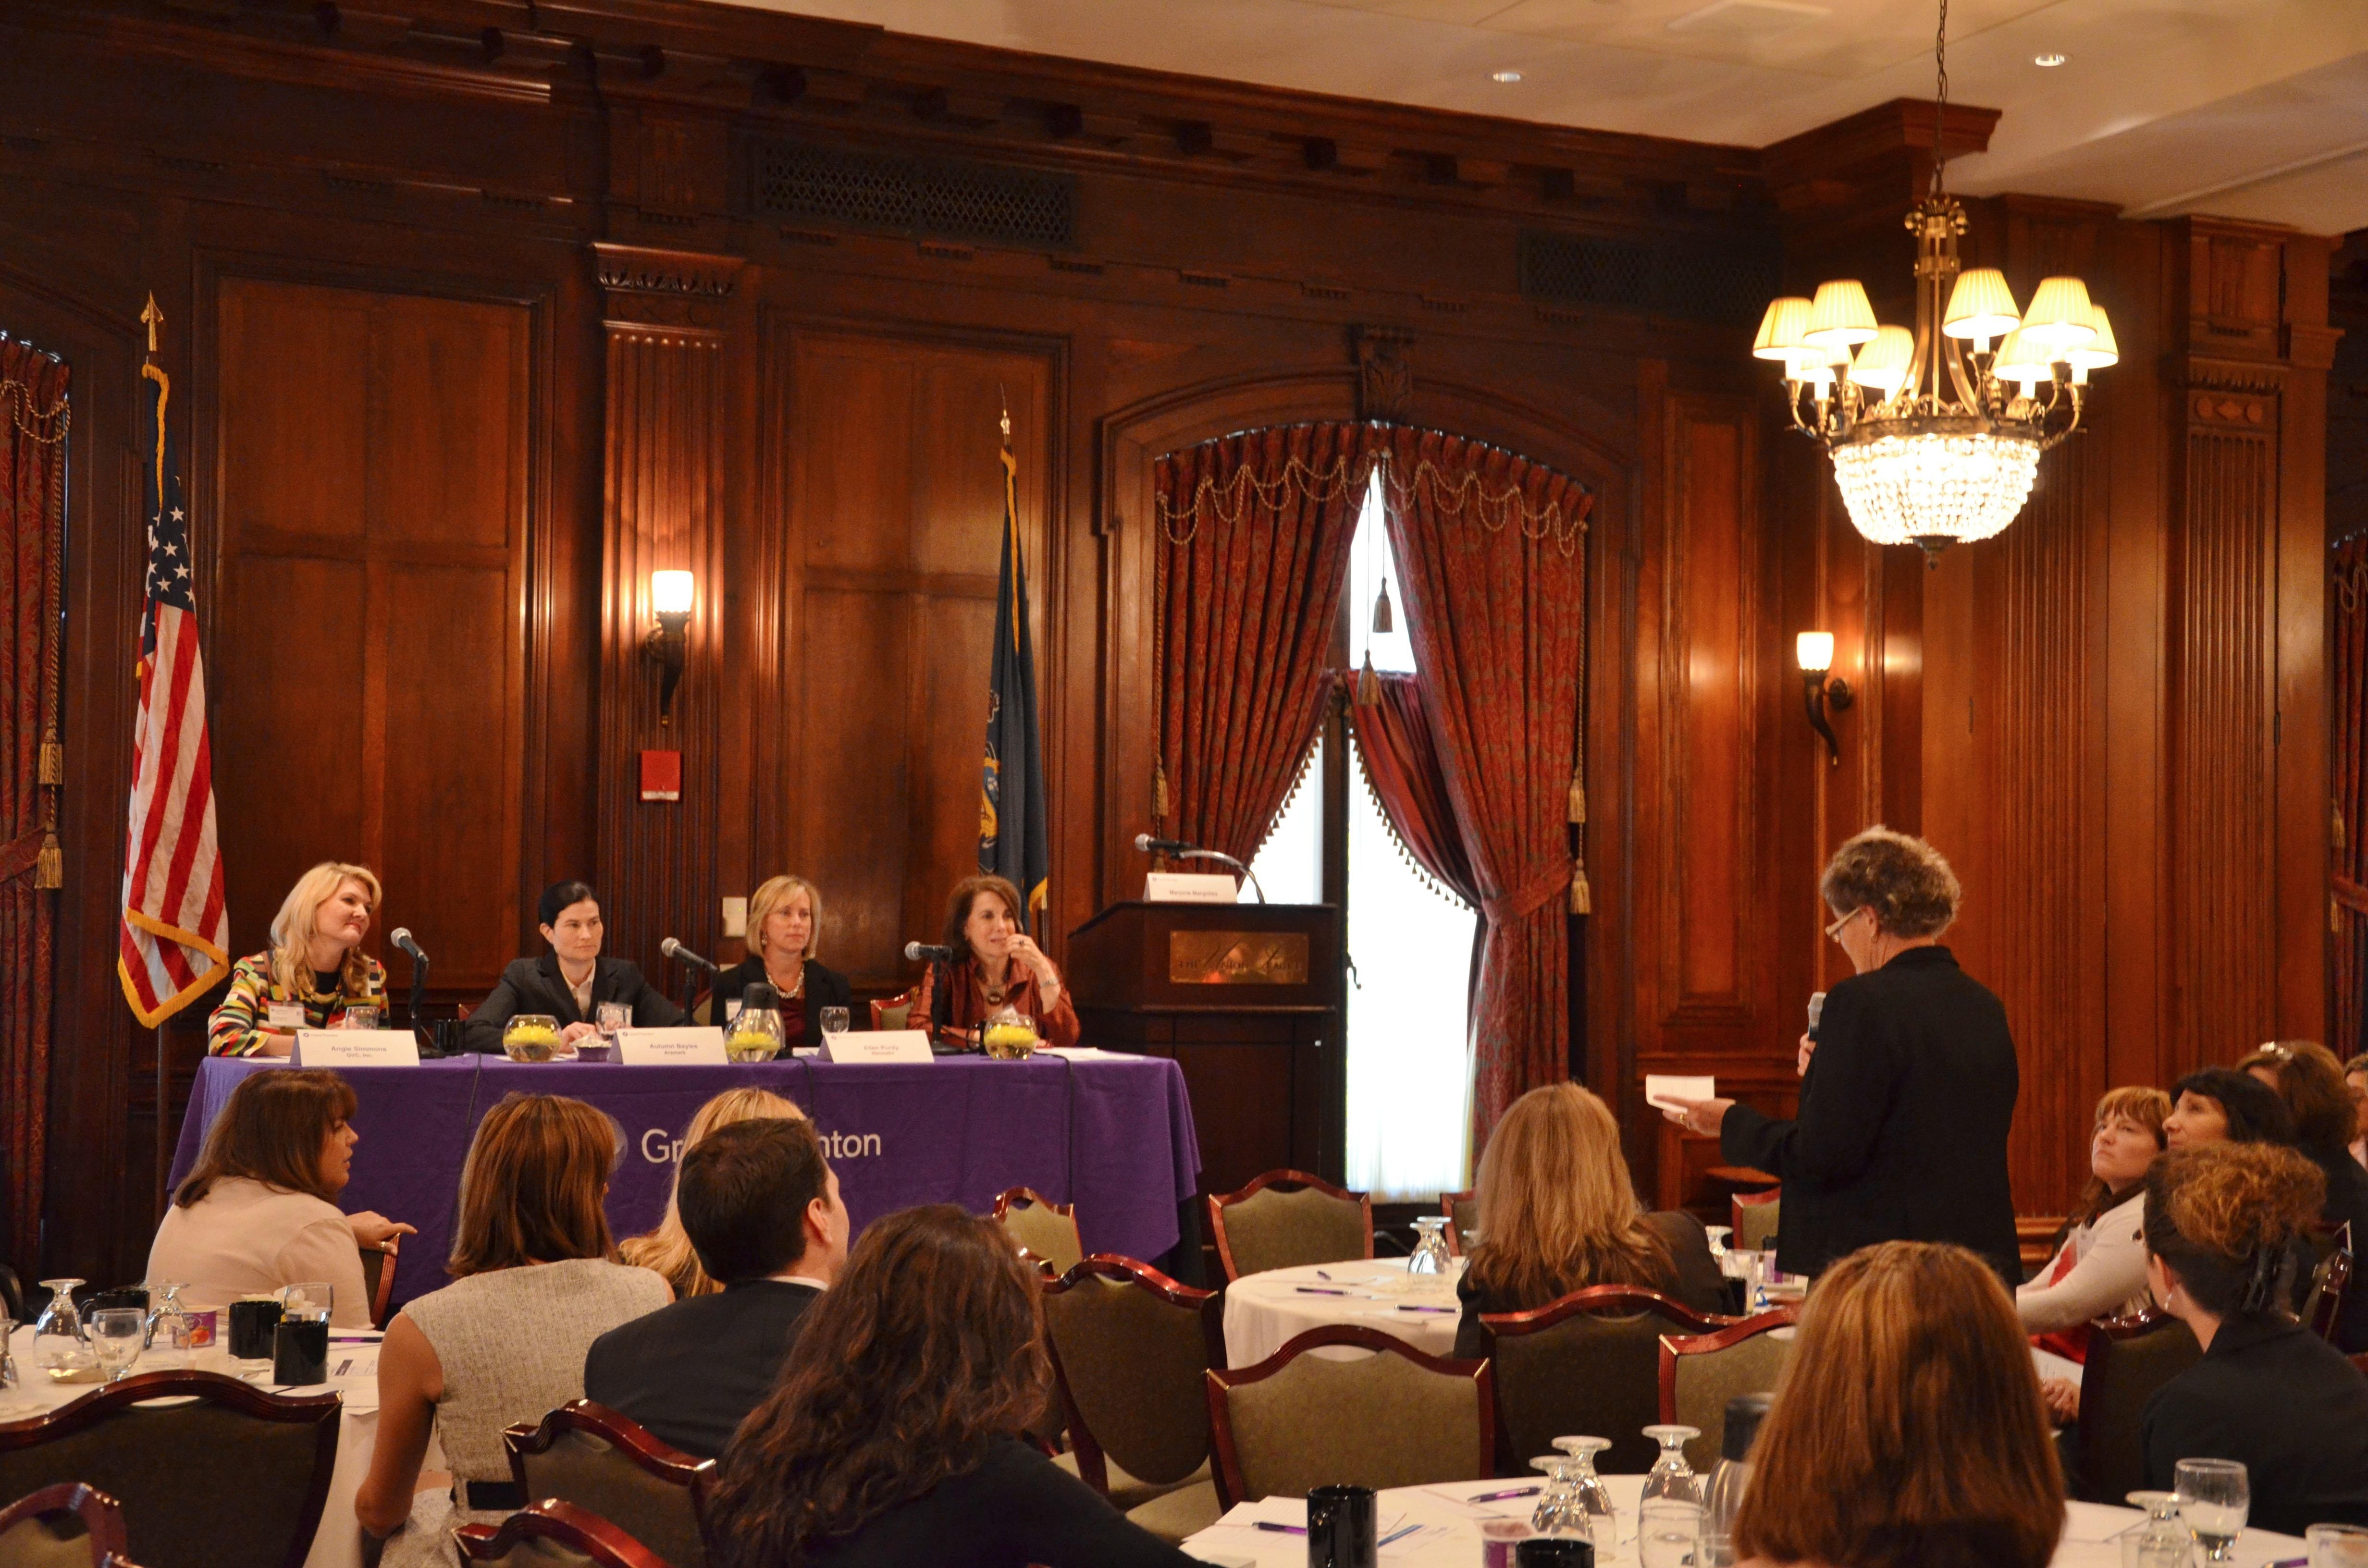 Panelists at Thursday's Women@Grant Thornton 8th Annual Women's Leadership Breakfast event answer a question from an audience member.